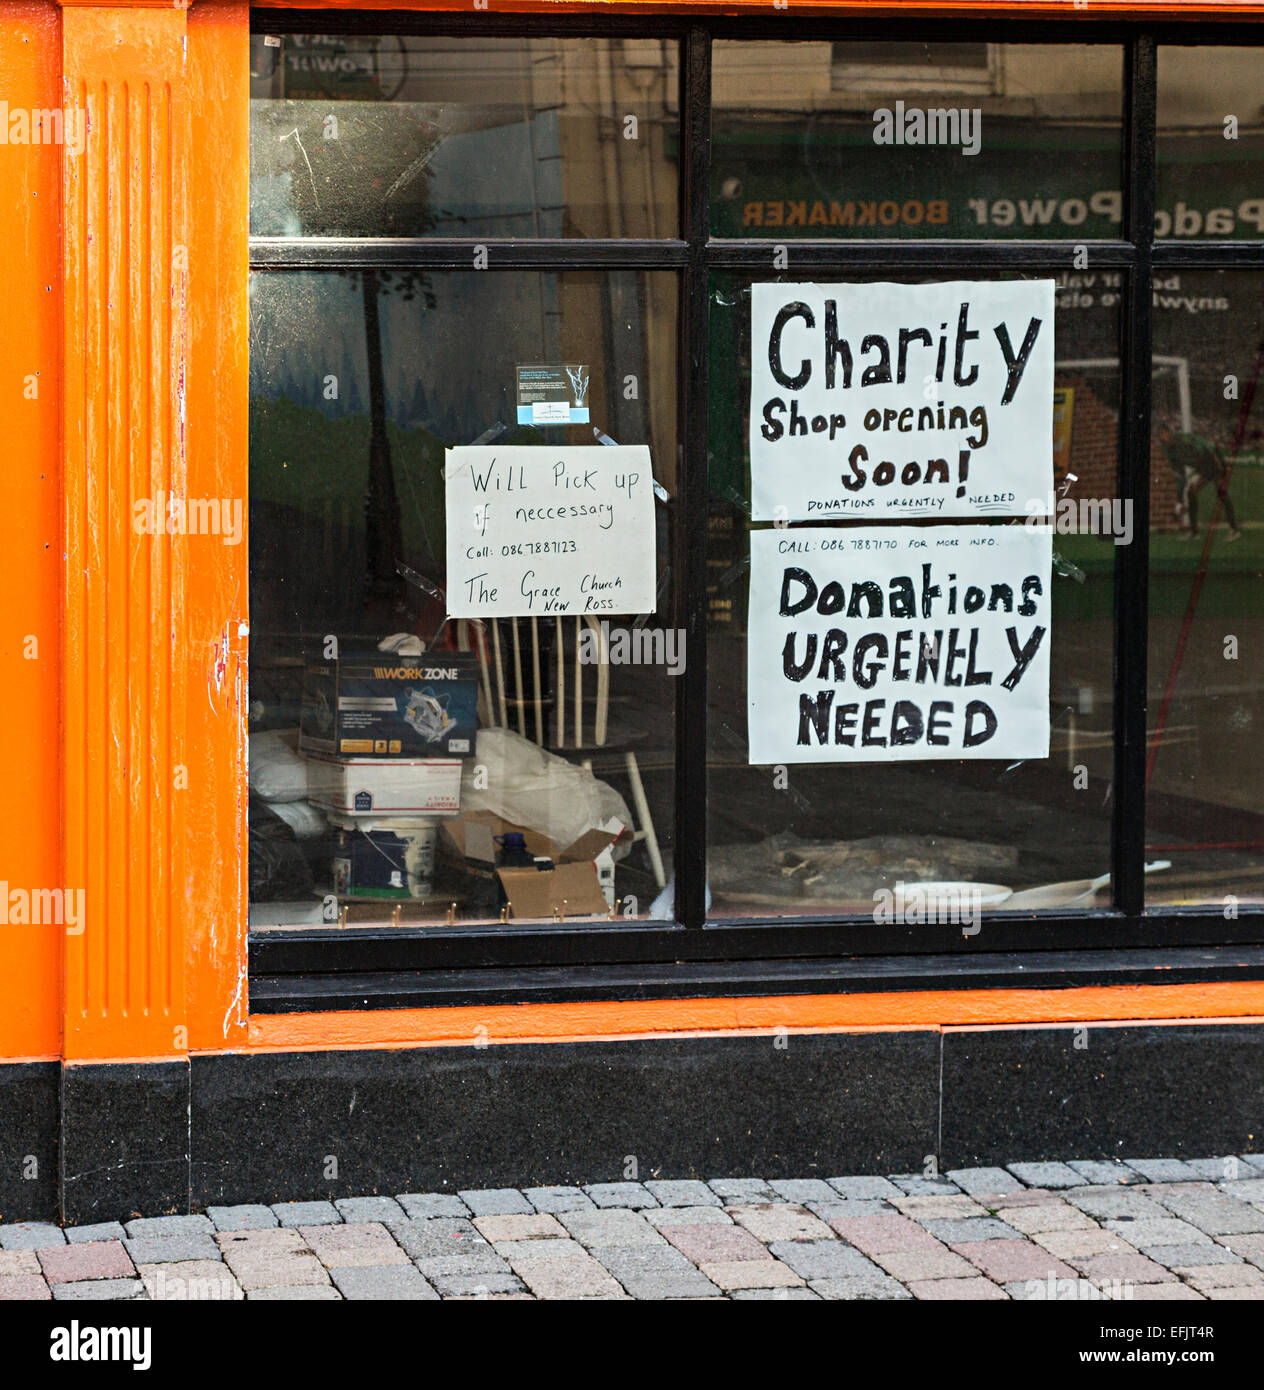 Sign in a charity shop window asking for donations, New Ross, Co. Wexford, Republic of Ireland - Stock Image